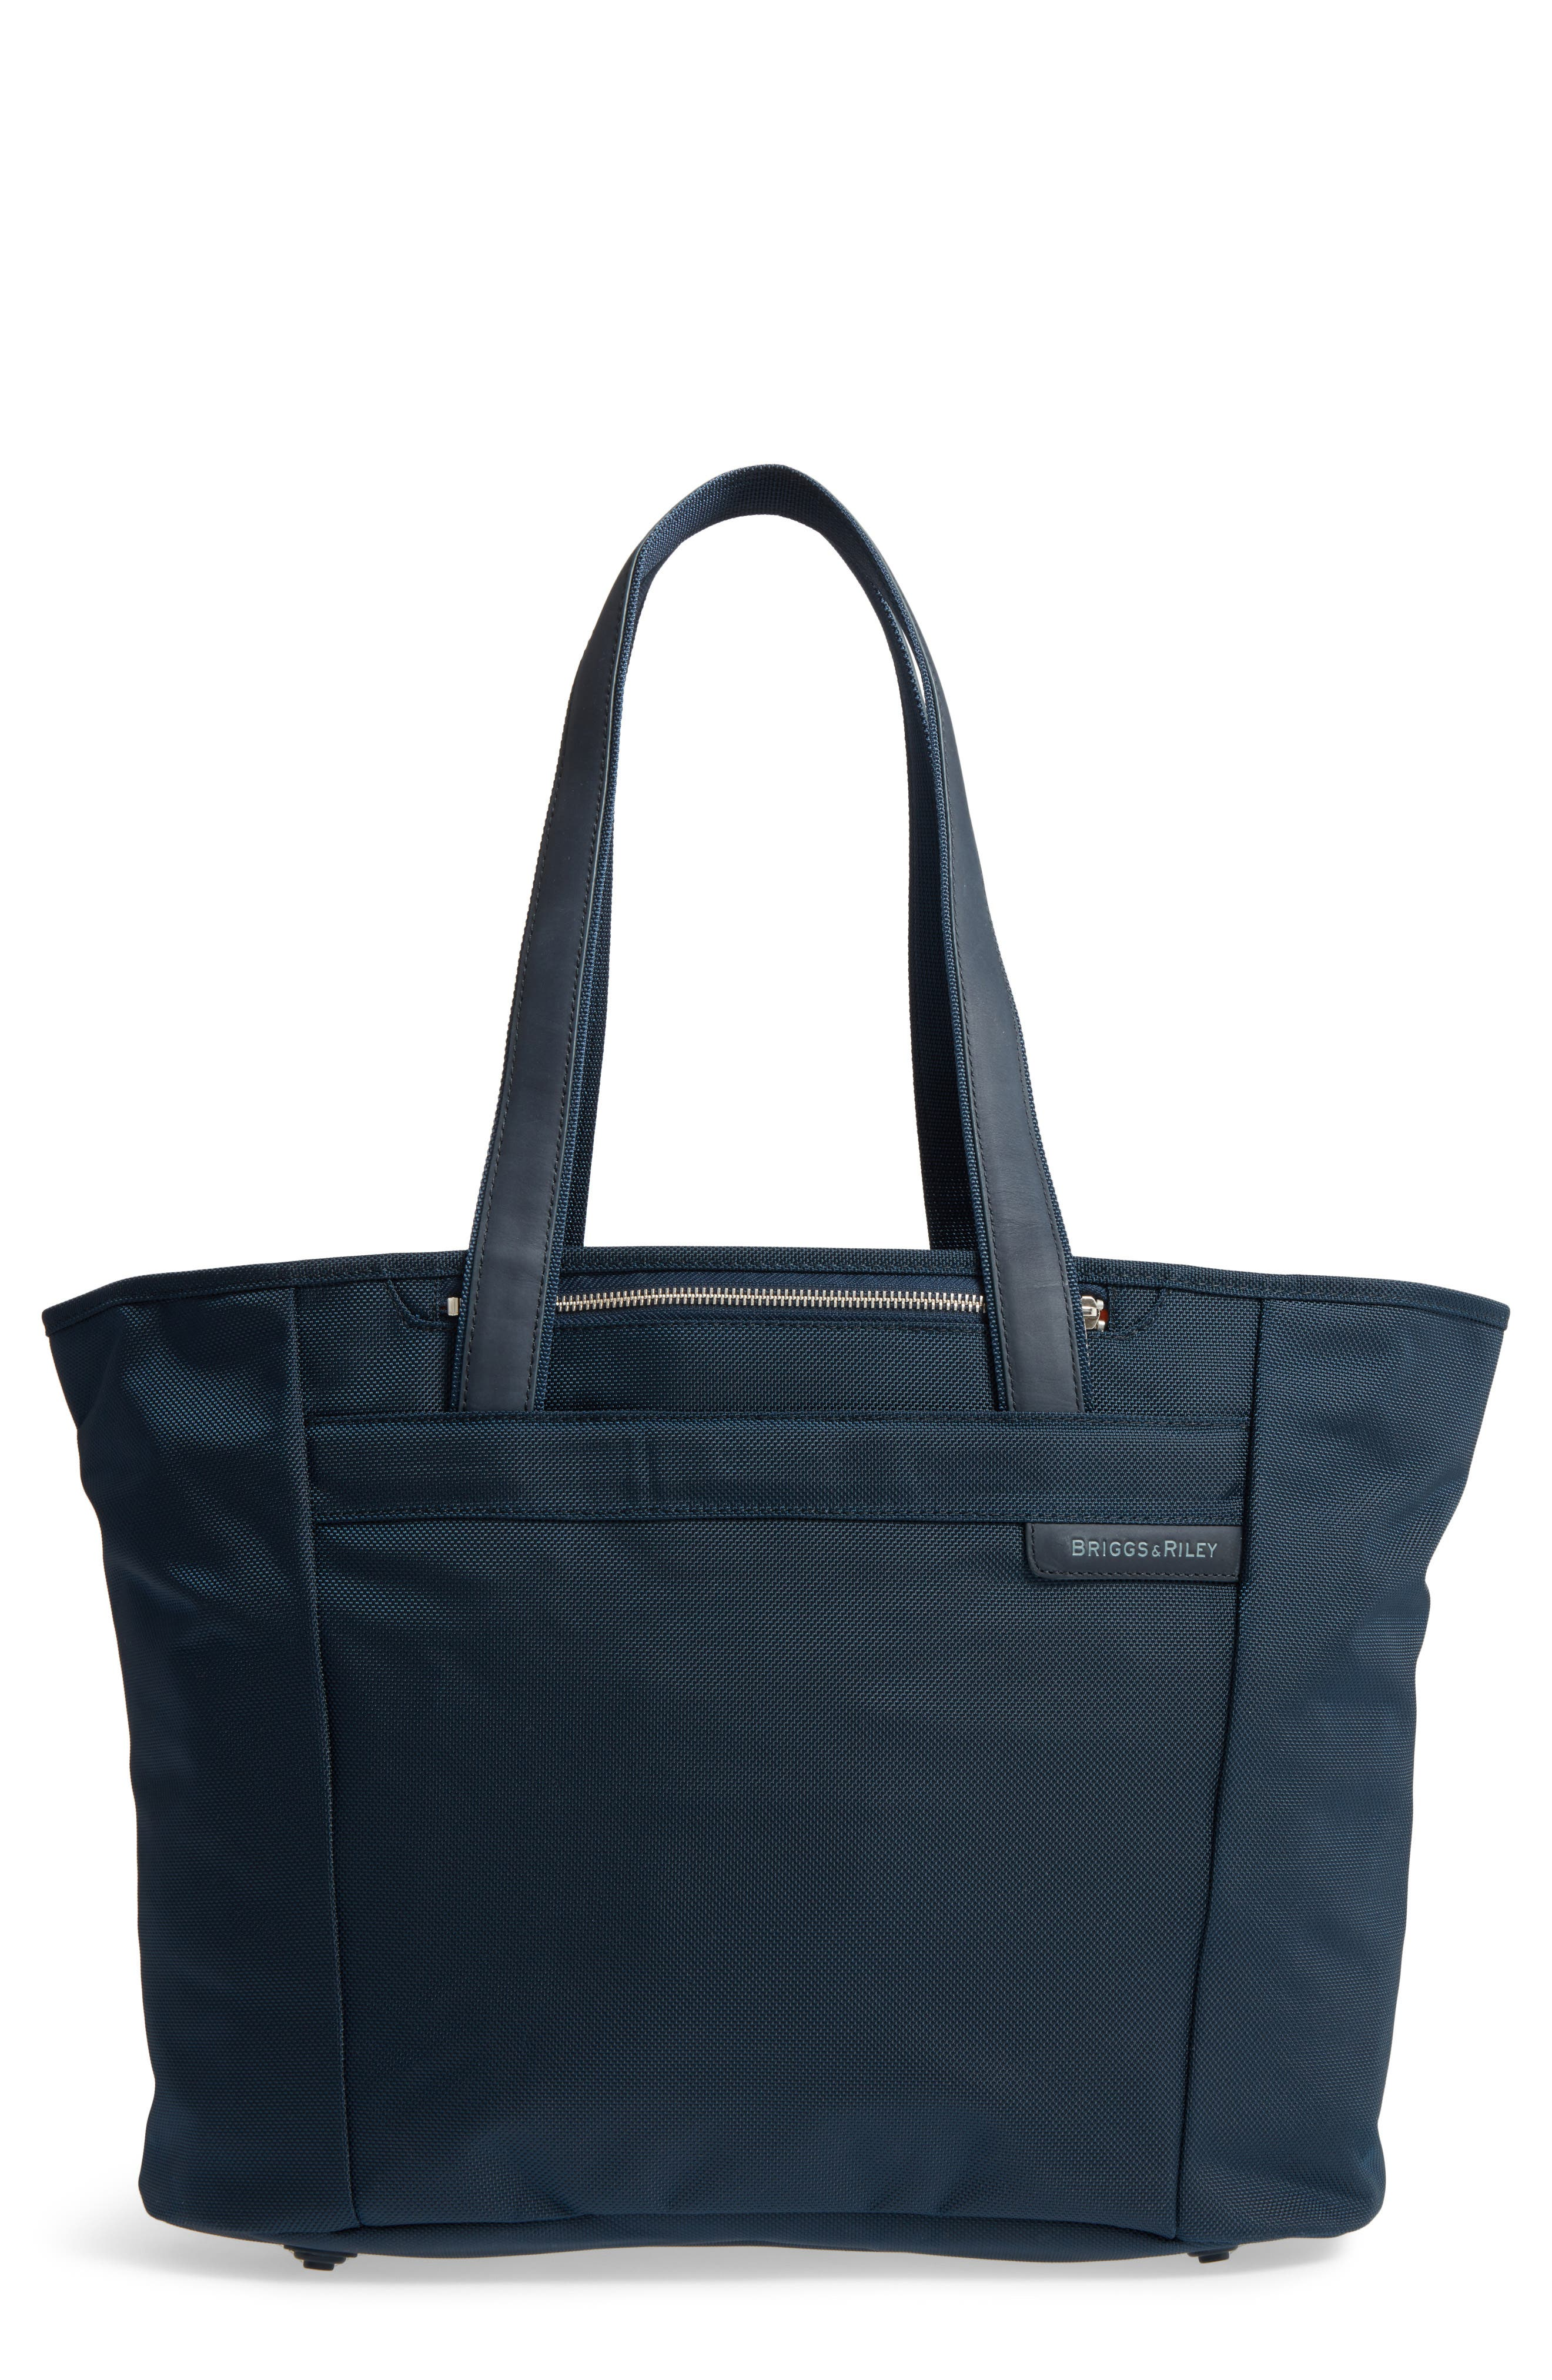 Briggs & Riley Ltd. Edition Tote Bag